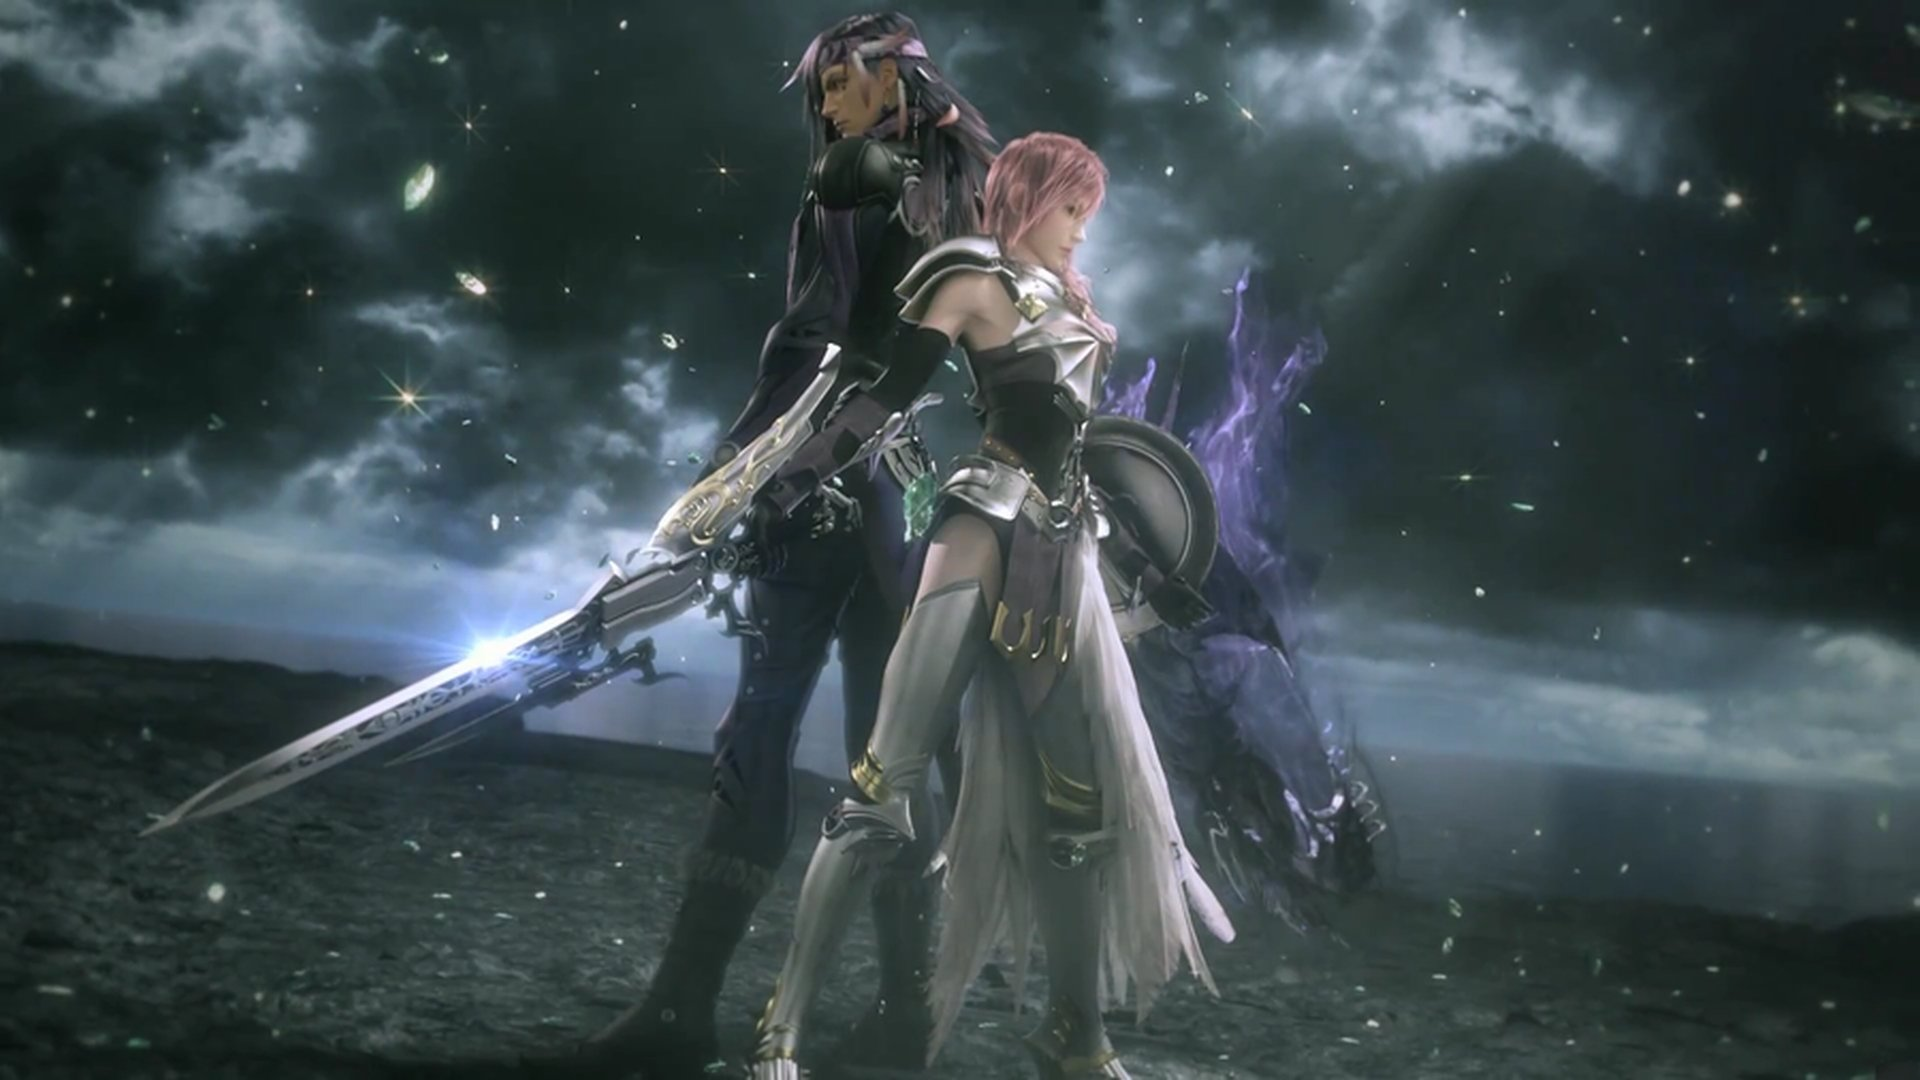 75 lightning (final fantasy) hd wallpapers | background images